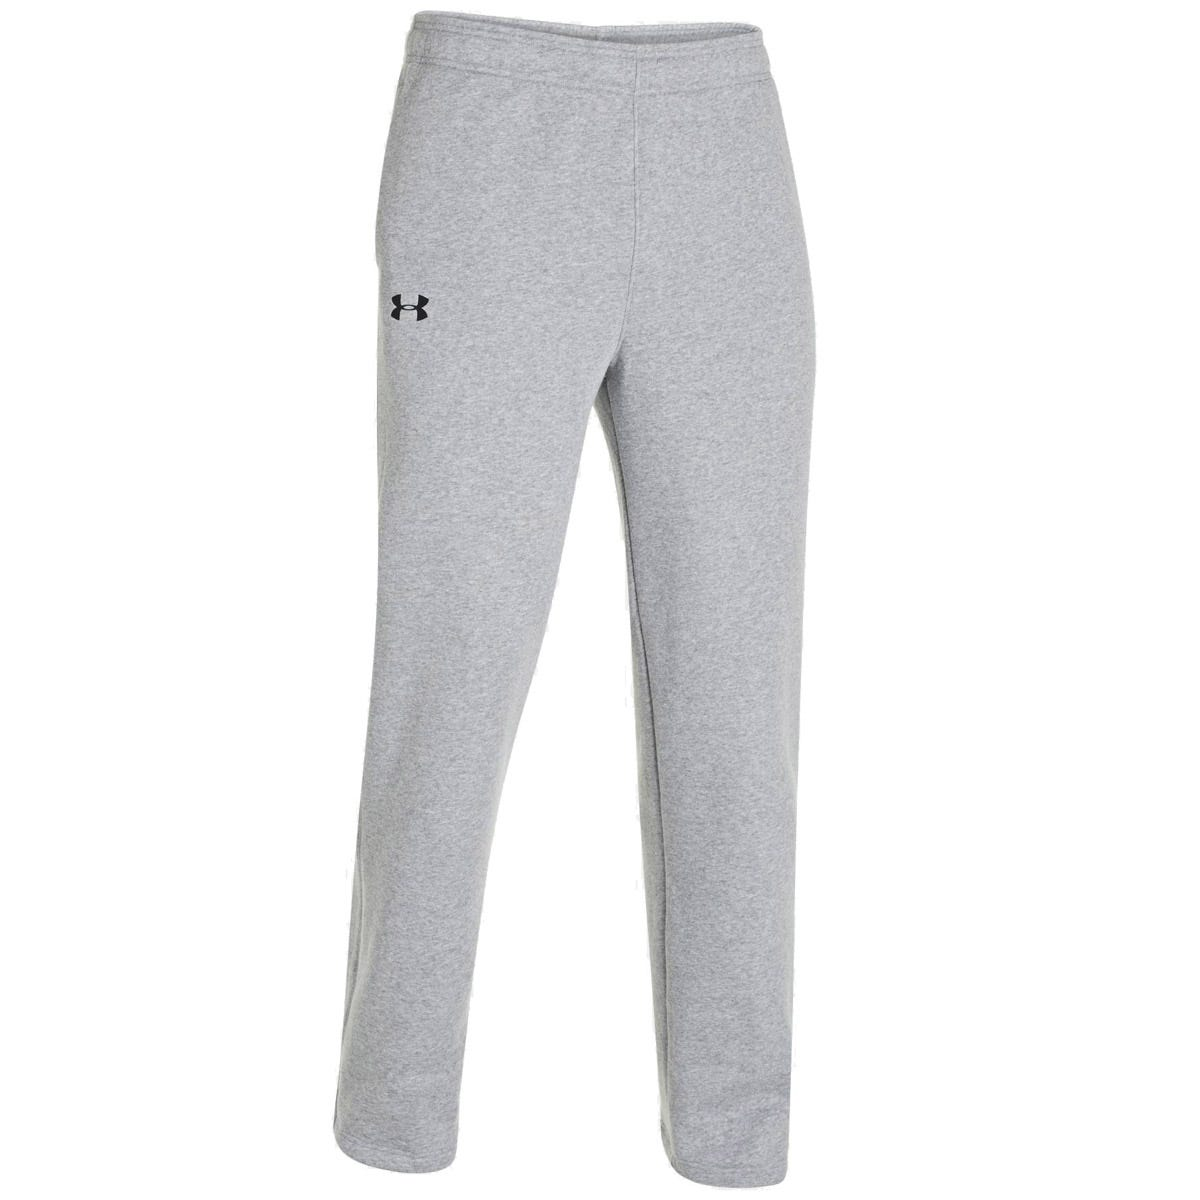 Rival Fleece Sr. Pants Under Armour; Baseball - S Midnight Navy/White